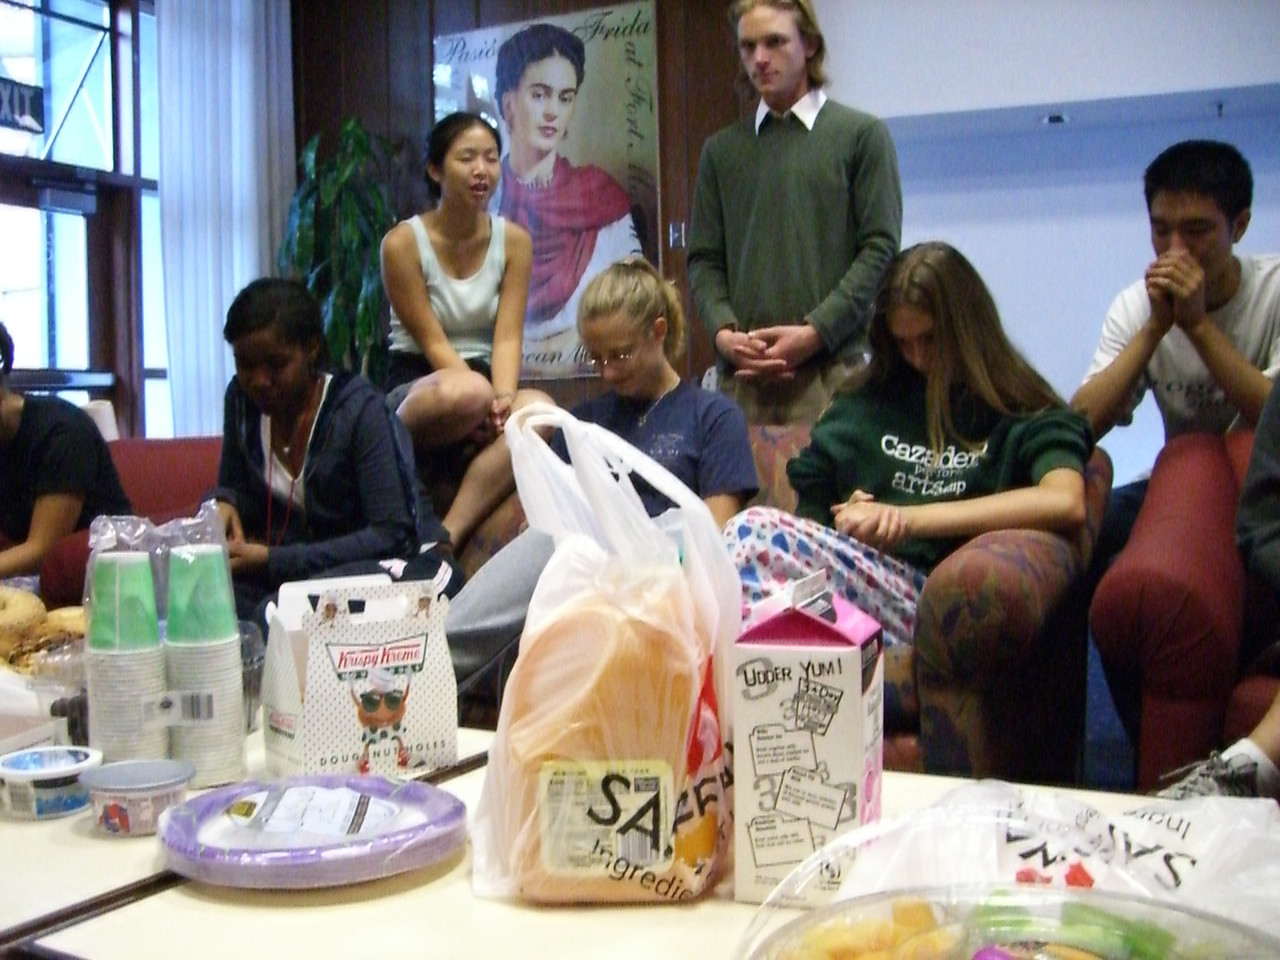 The Food - Saying Grace - Hey I was praying too, but why is The Real Ben Savage looking at the camera?!? :D